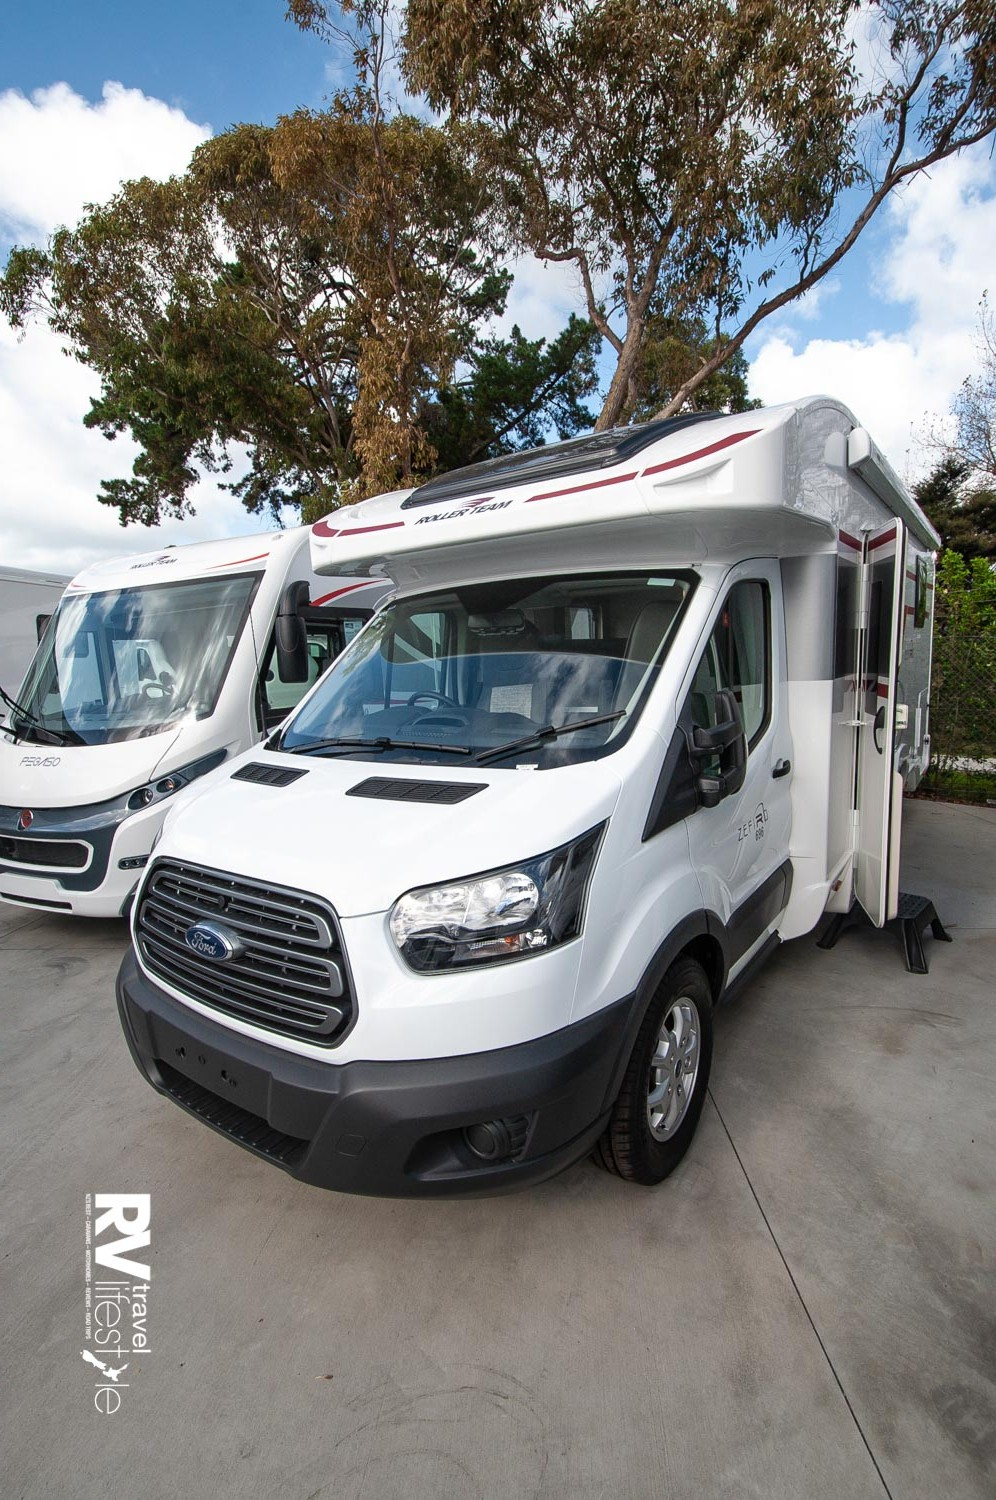 Based on the wide-track Ford chassis, this is a low-line model, 3500kg model on a WOF with a rear island bed – tick, tick, tick for many purchasers